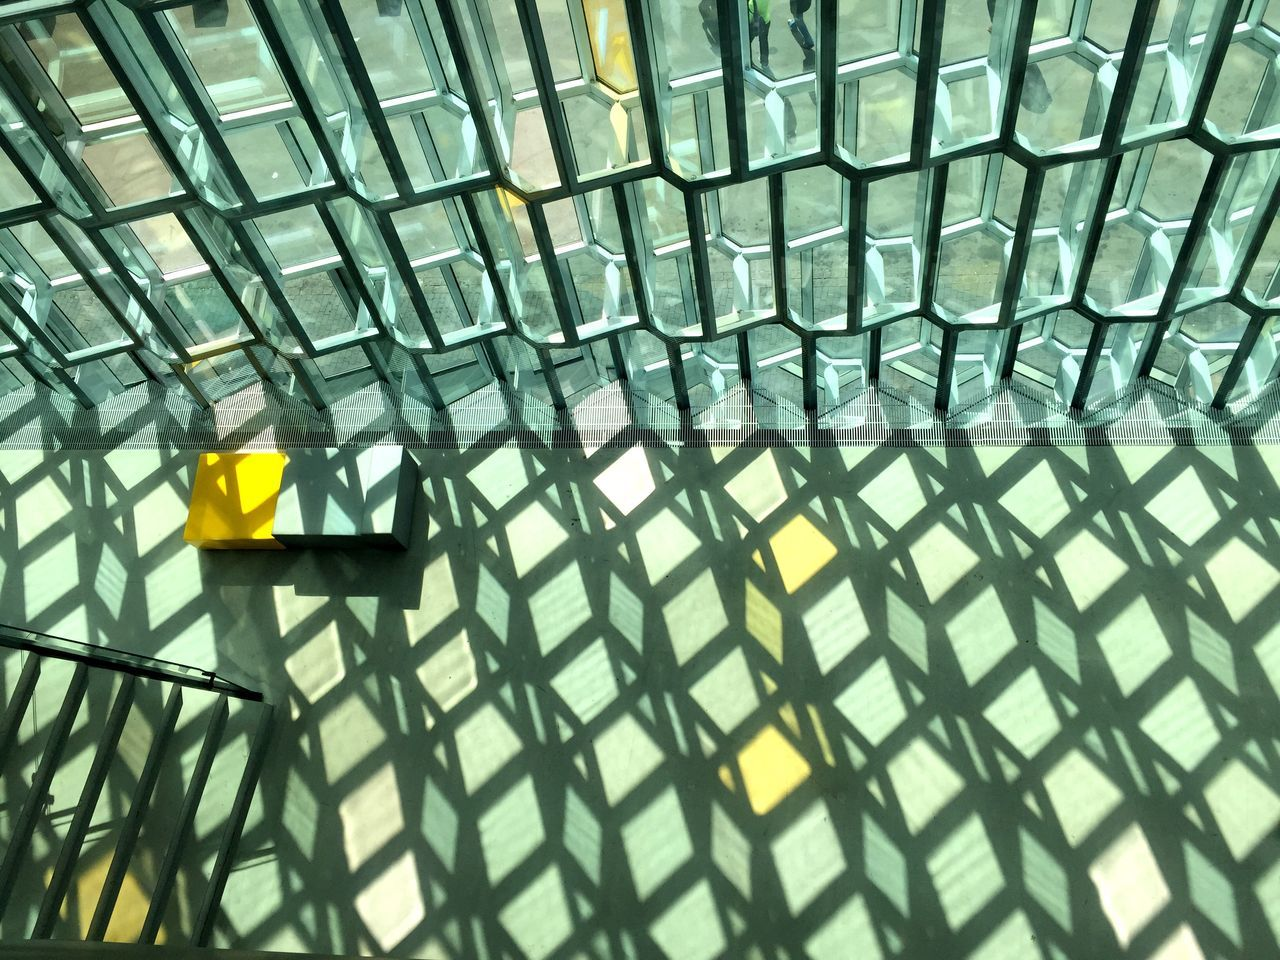 High angle view of shadow of glass window on floor at lobby